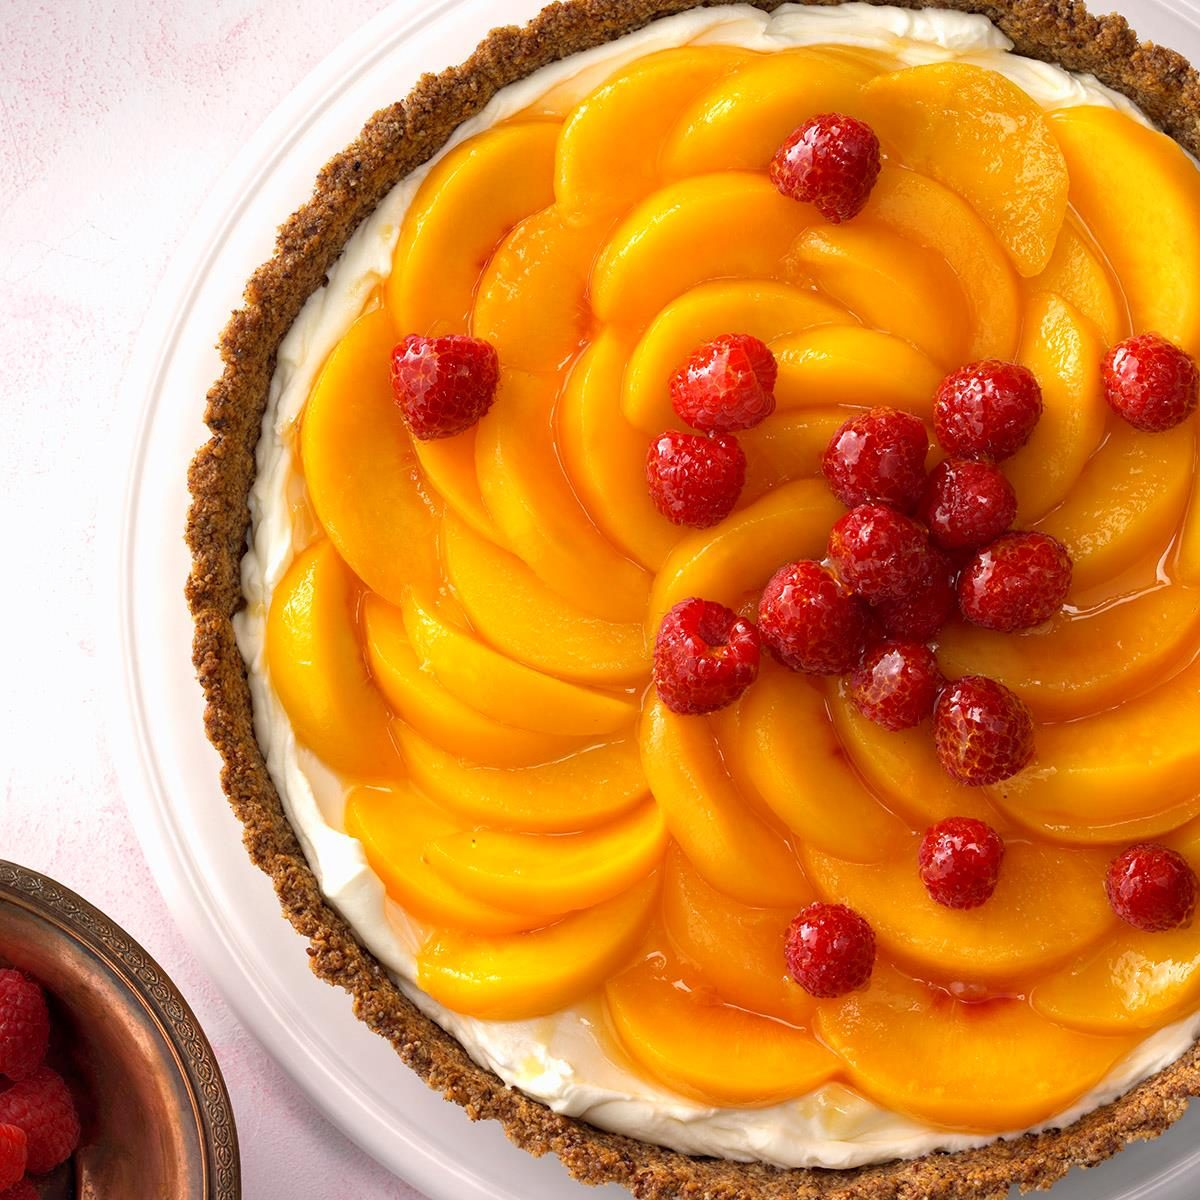 Peaches: Peaches 'n' Cream Raspberry Tart